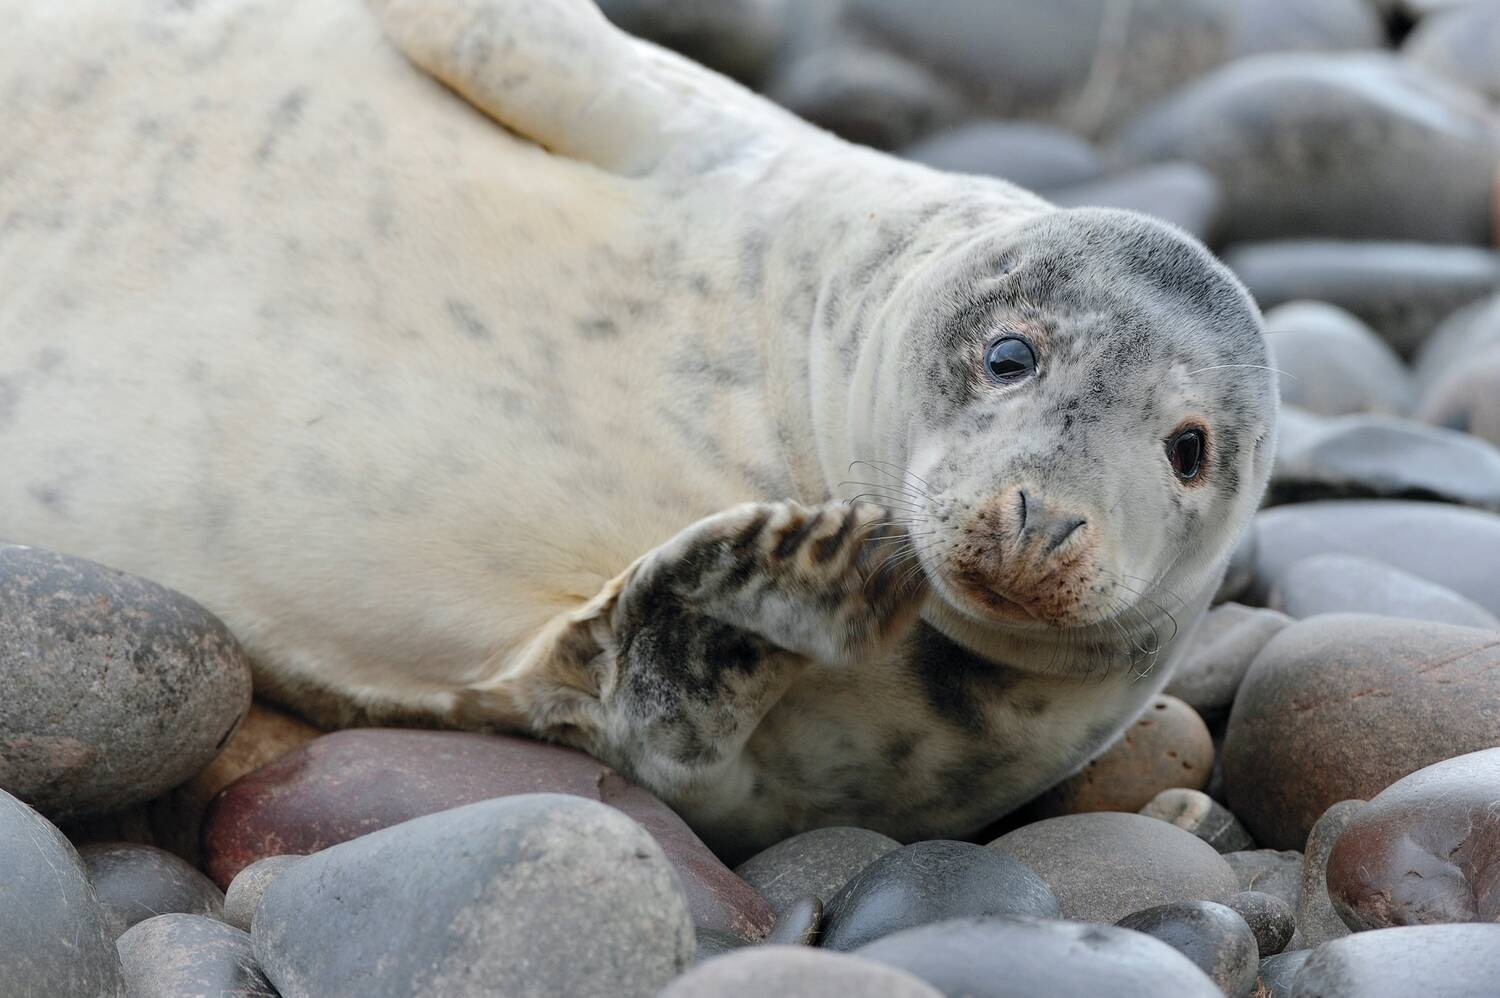 A large seal lies on some large pebbles and stones on a beach. It has a creamy, blotchy tummy, and a darker head. It appears to be waving one flipper at the camera.